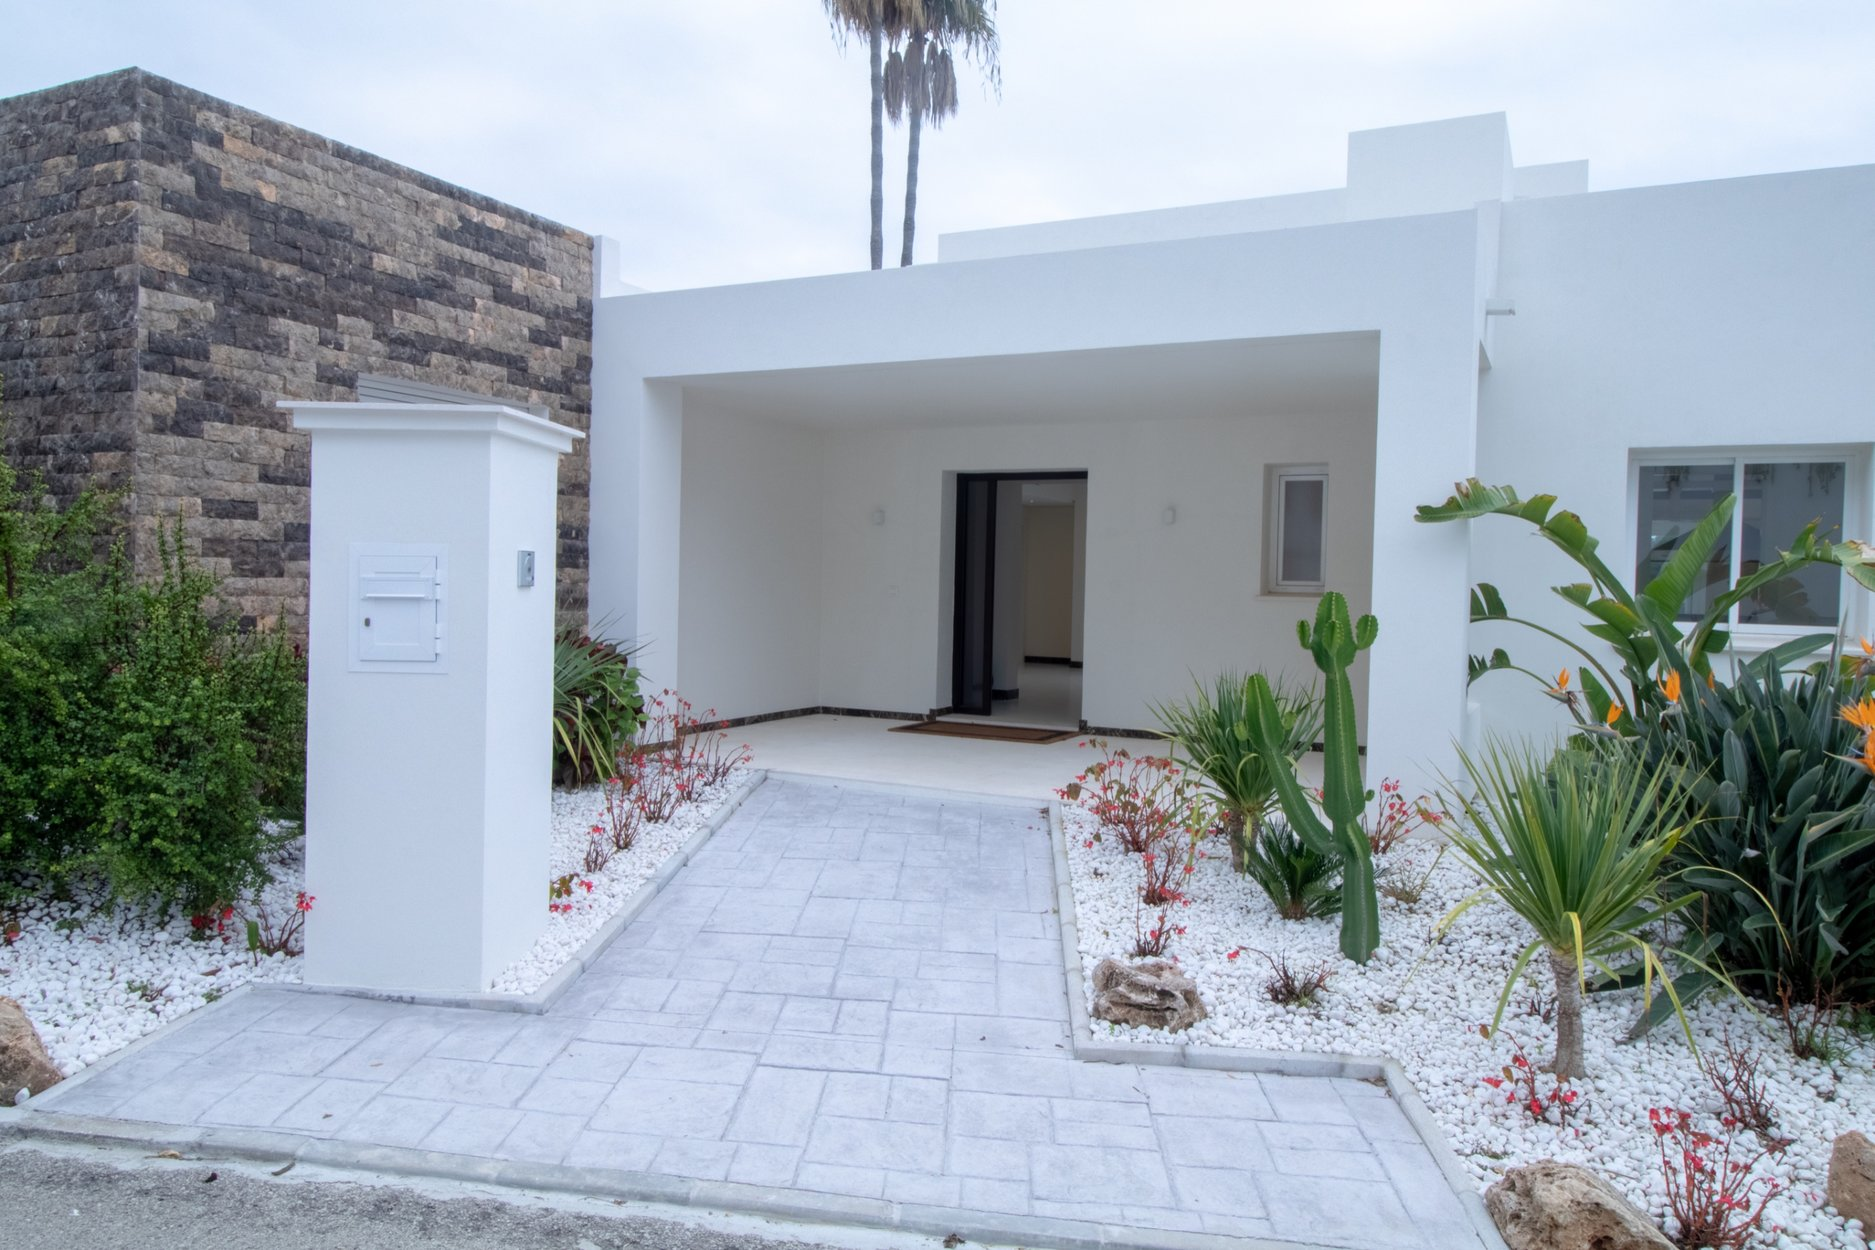 aaa4 bedroom Villa in El Paraiso, Estepona | M367233